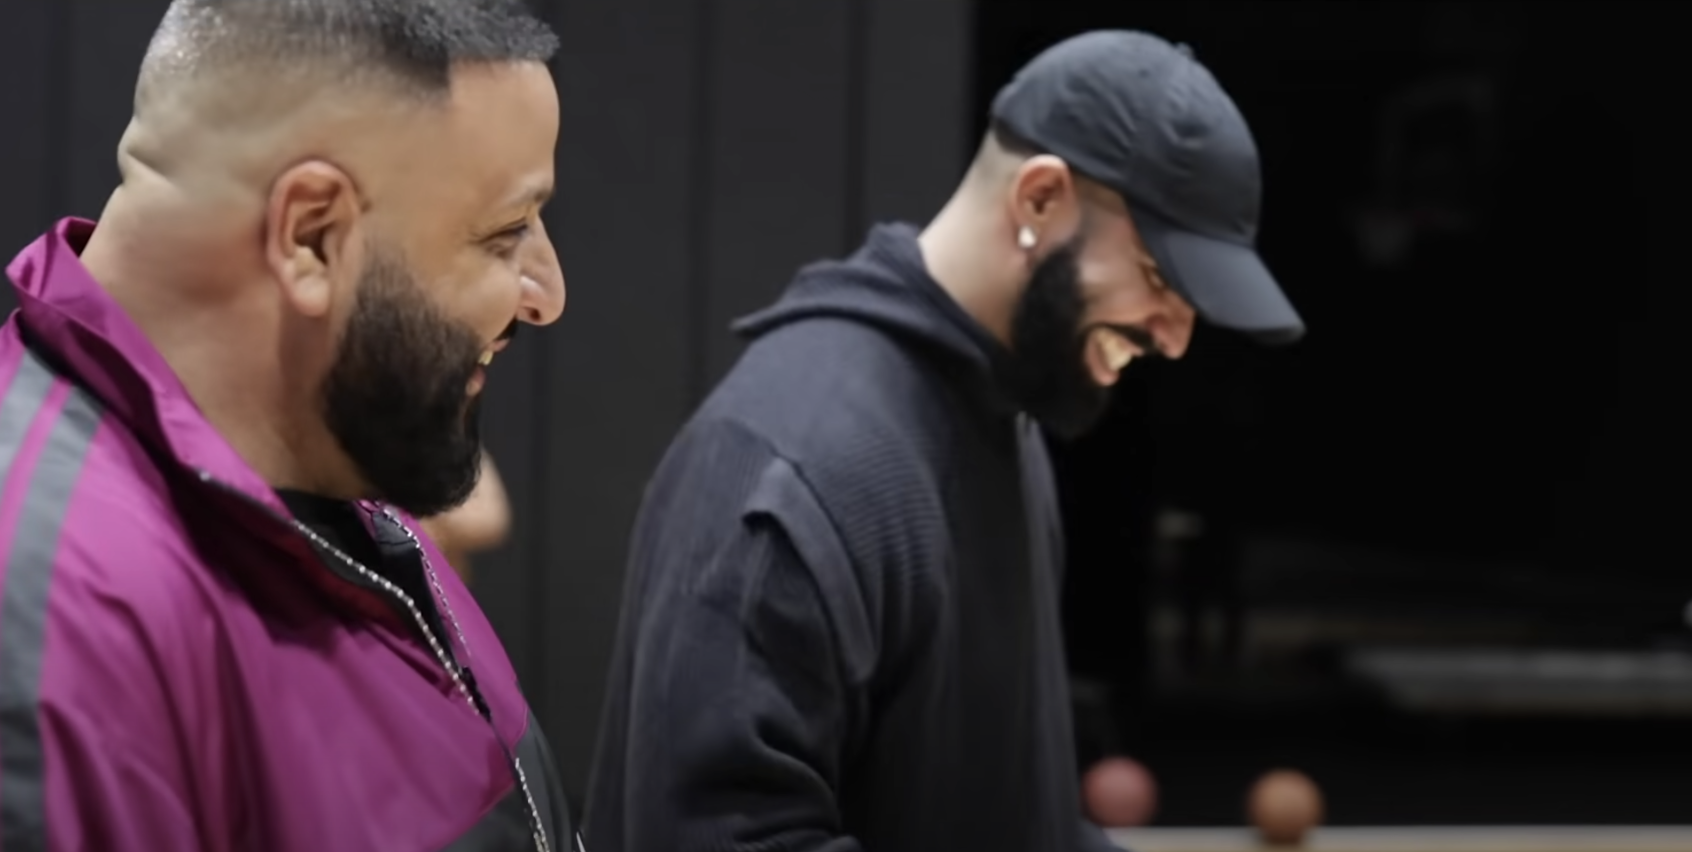 SPOTTED: Drake and DJ Khaled Shoot Their Shot In POPSTAR Visualizer